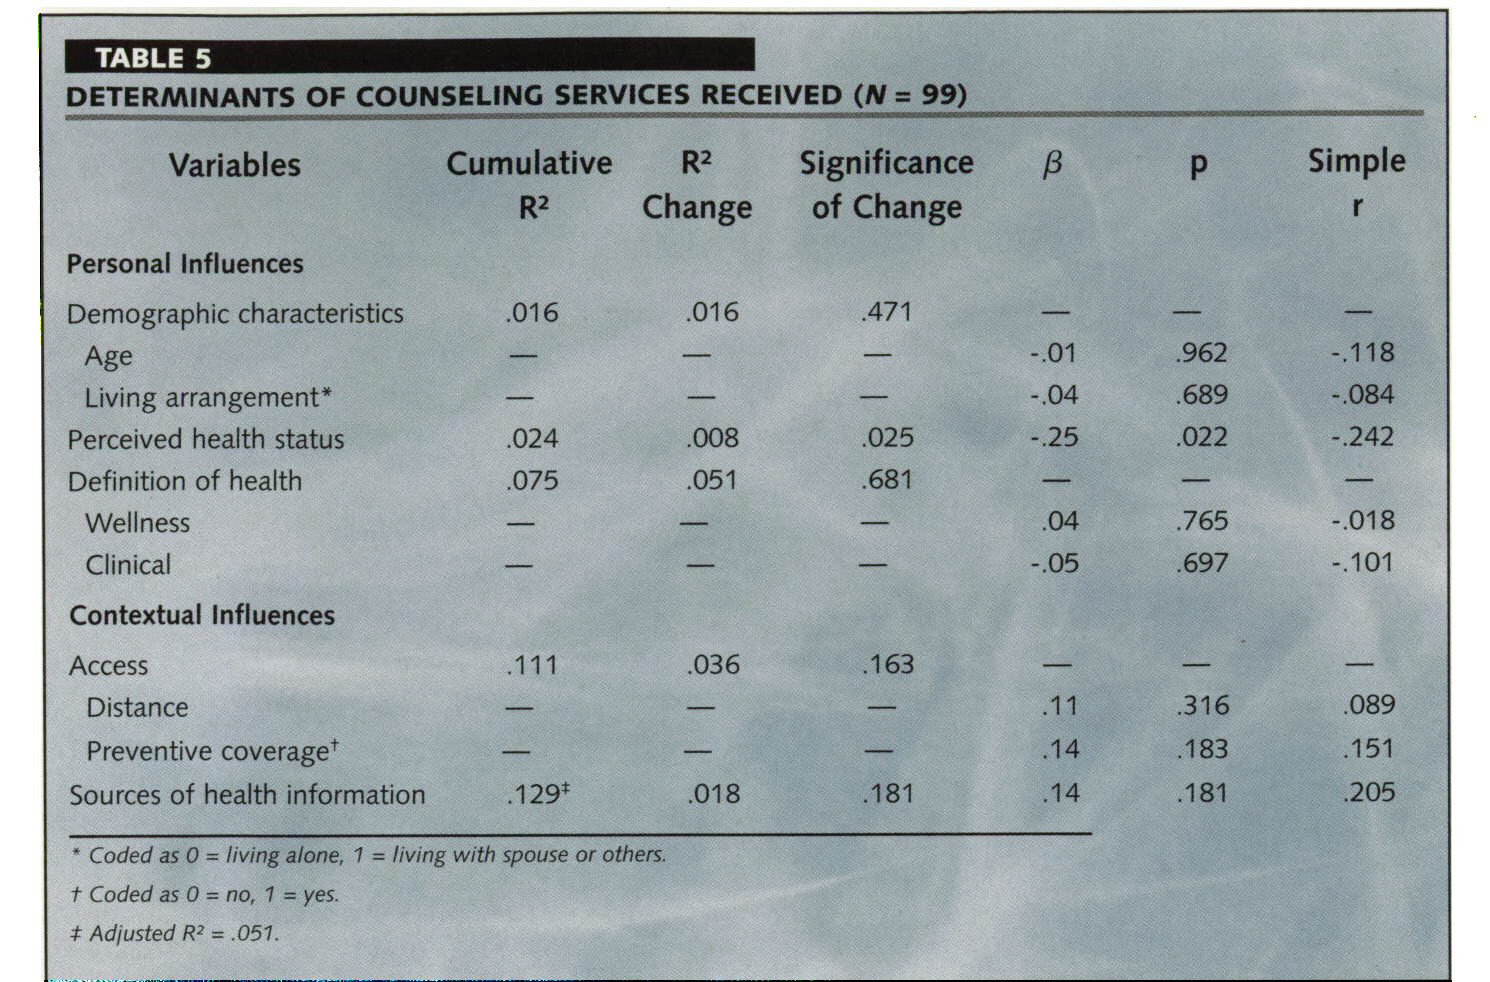 TABLE 5DETERMINANTS OF COUNSELING SERVICES RECEIVED (N = 99)